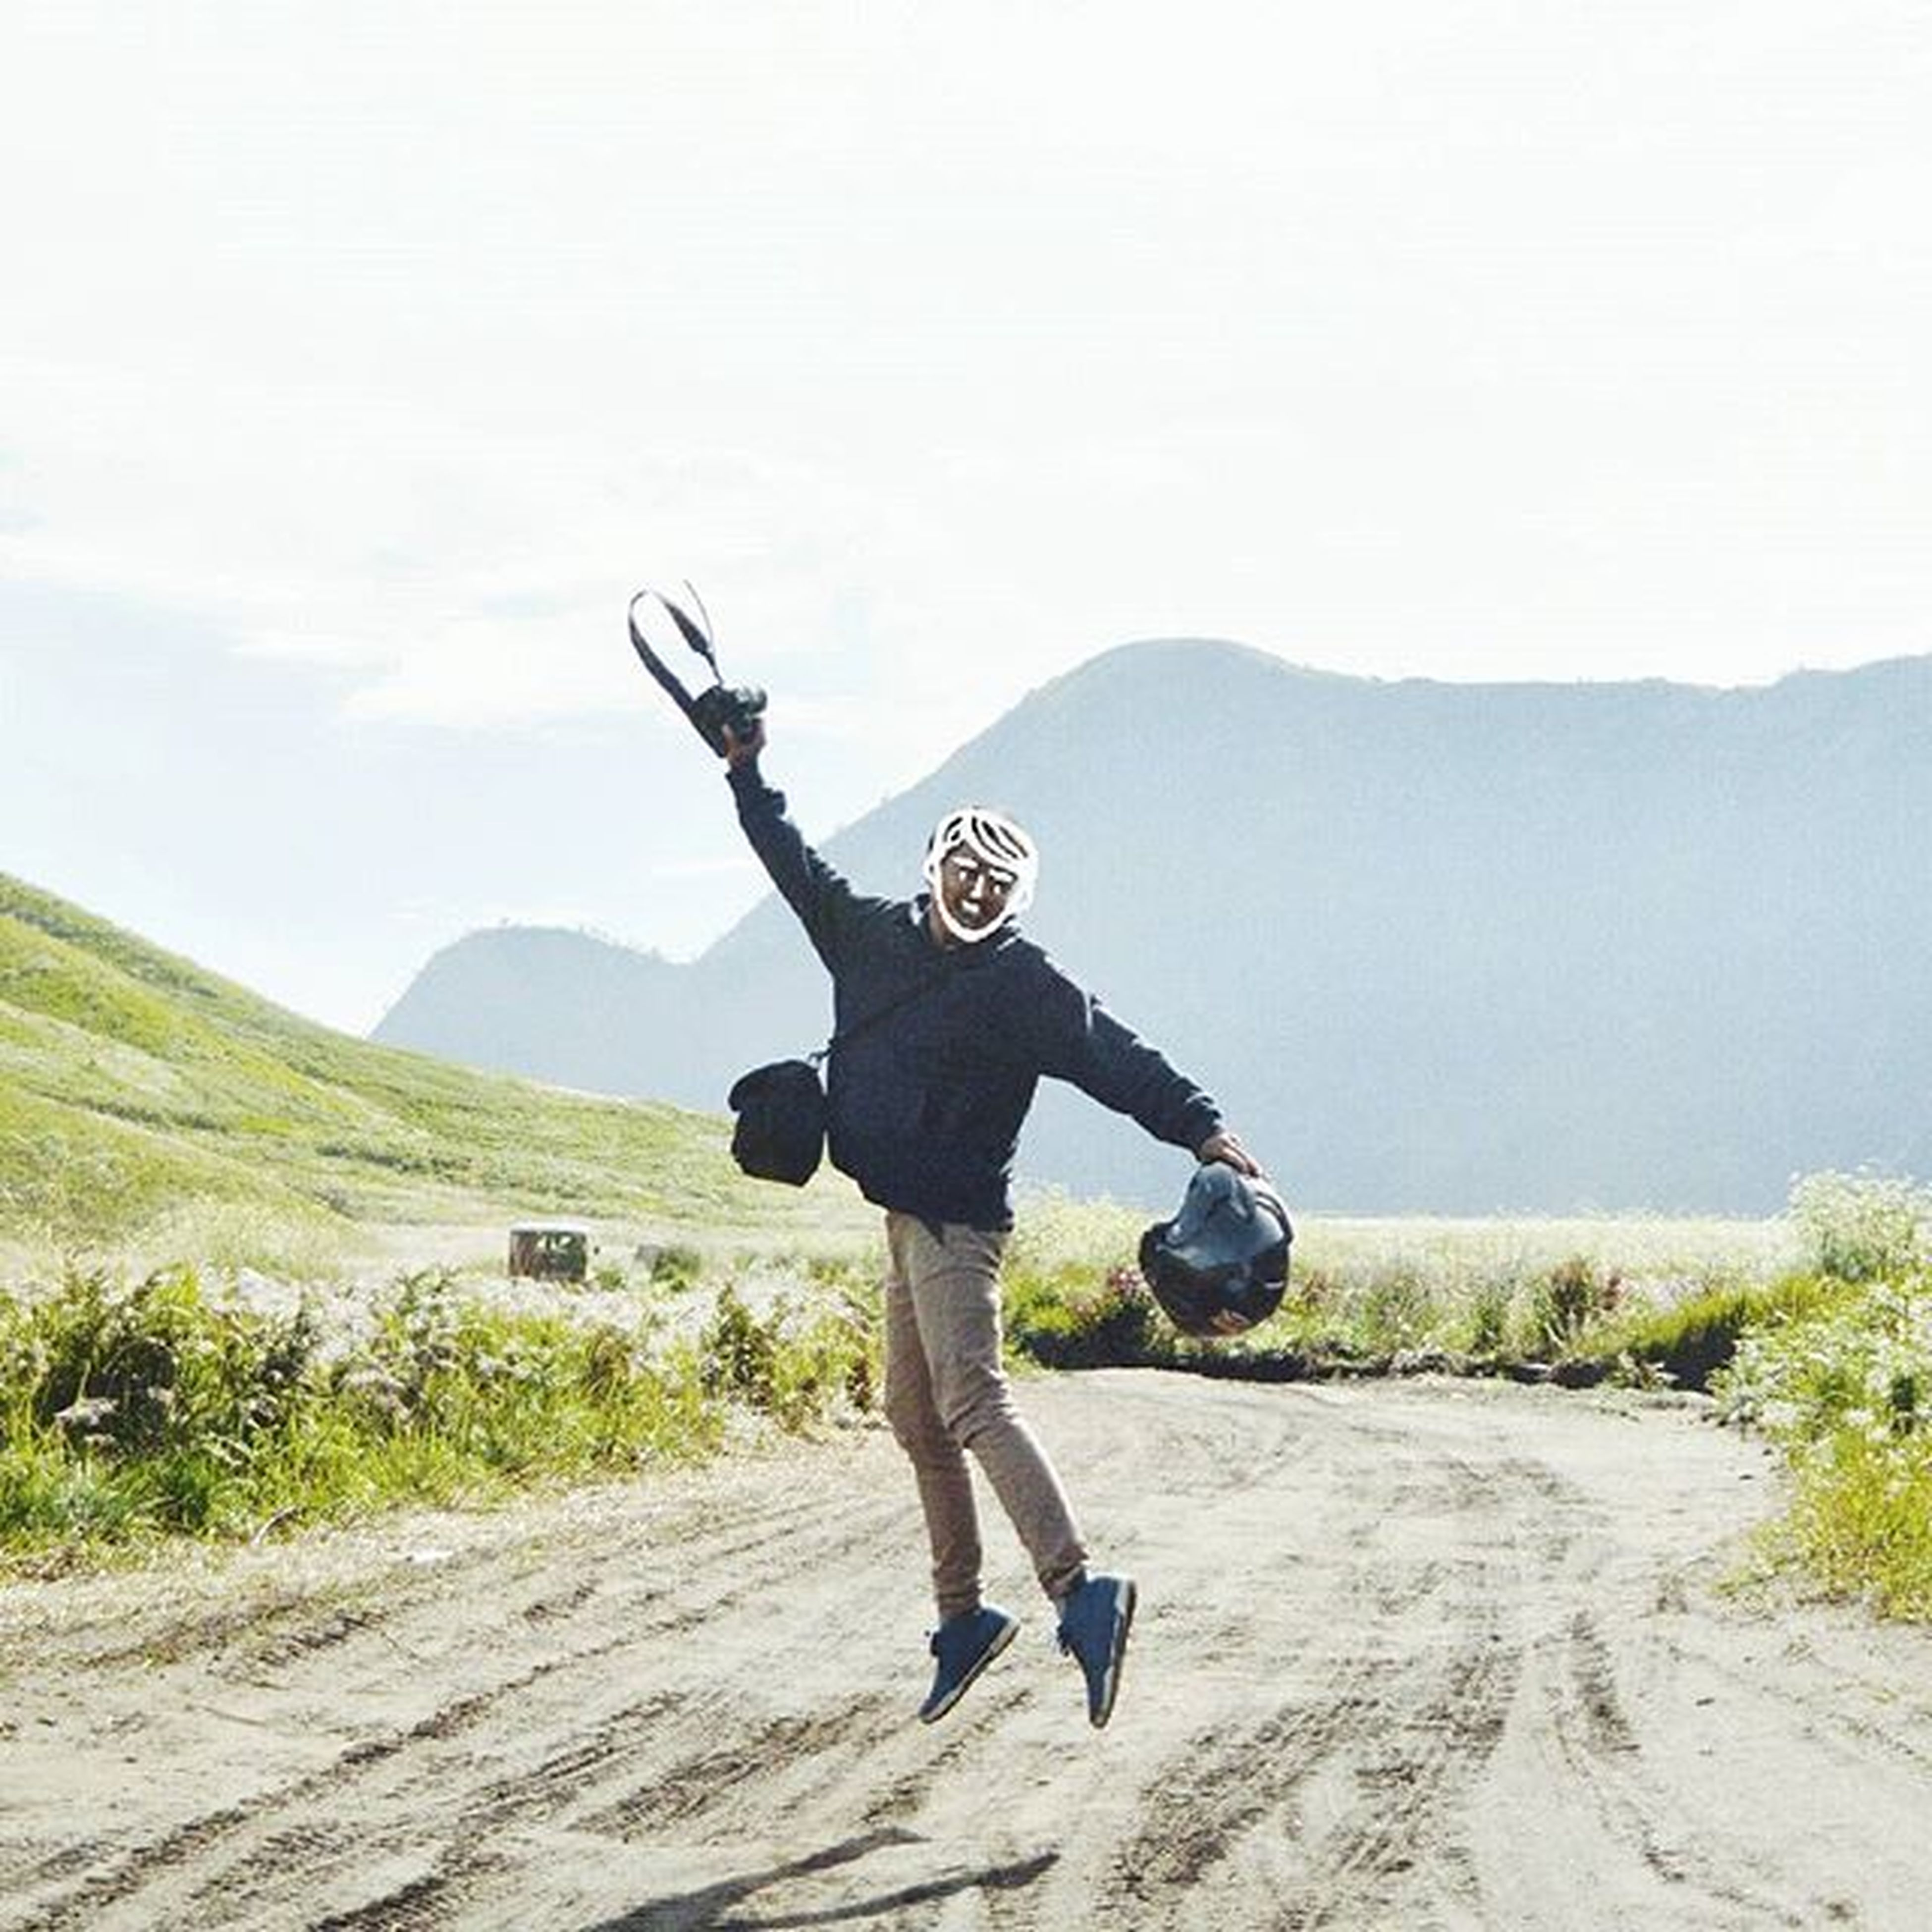 full length, lifestyles, leisure activity, casual clothing, young adult, jumping, mid-air, skill, landscape, clear sky, arms outstretched, freedom, mountain, sport, healthy lifestyle, holding, sky, person